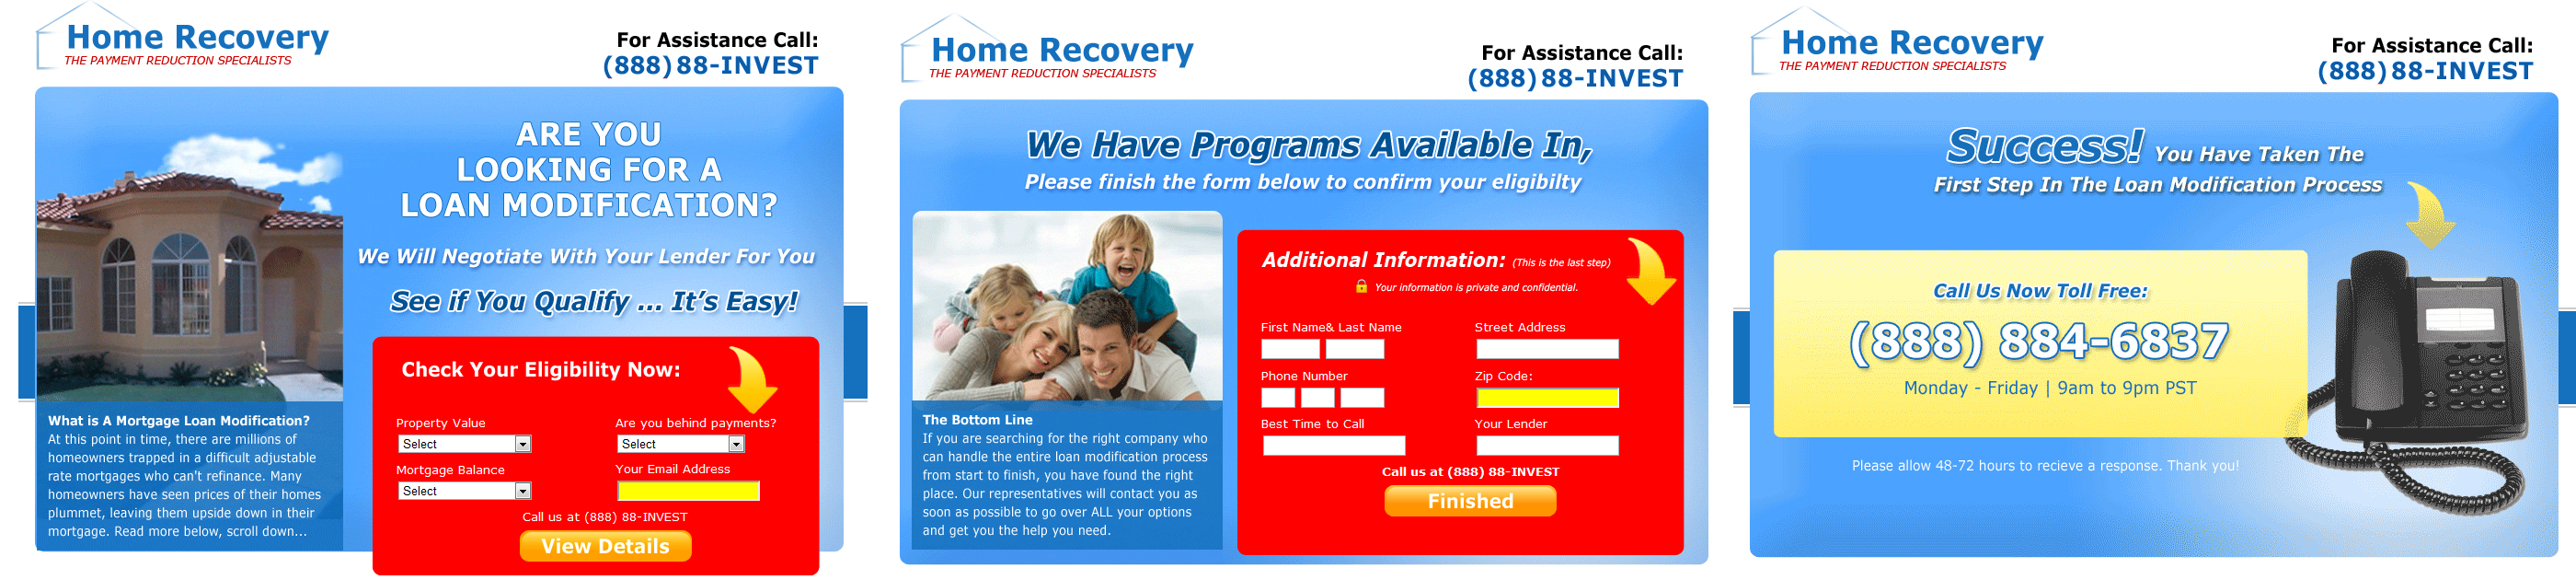 home recovery steps